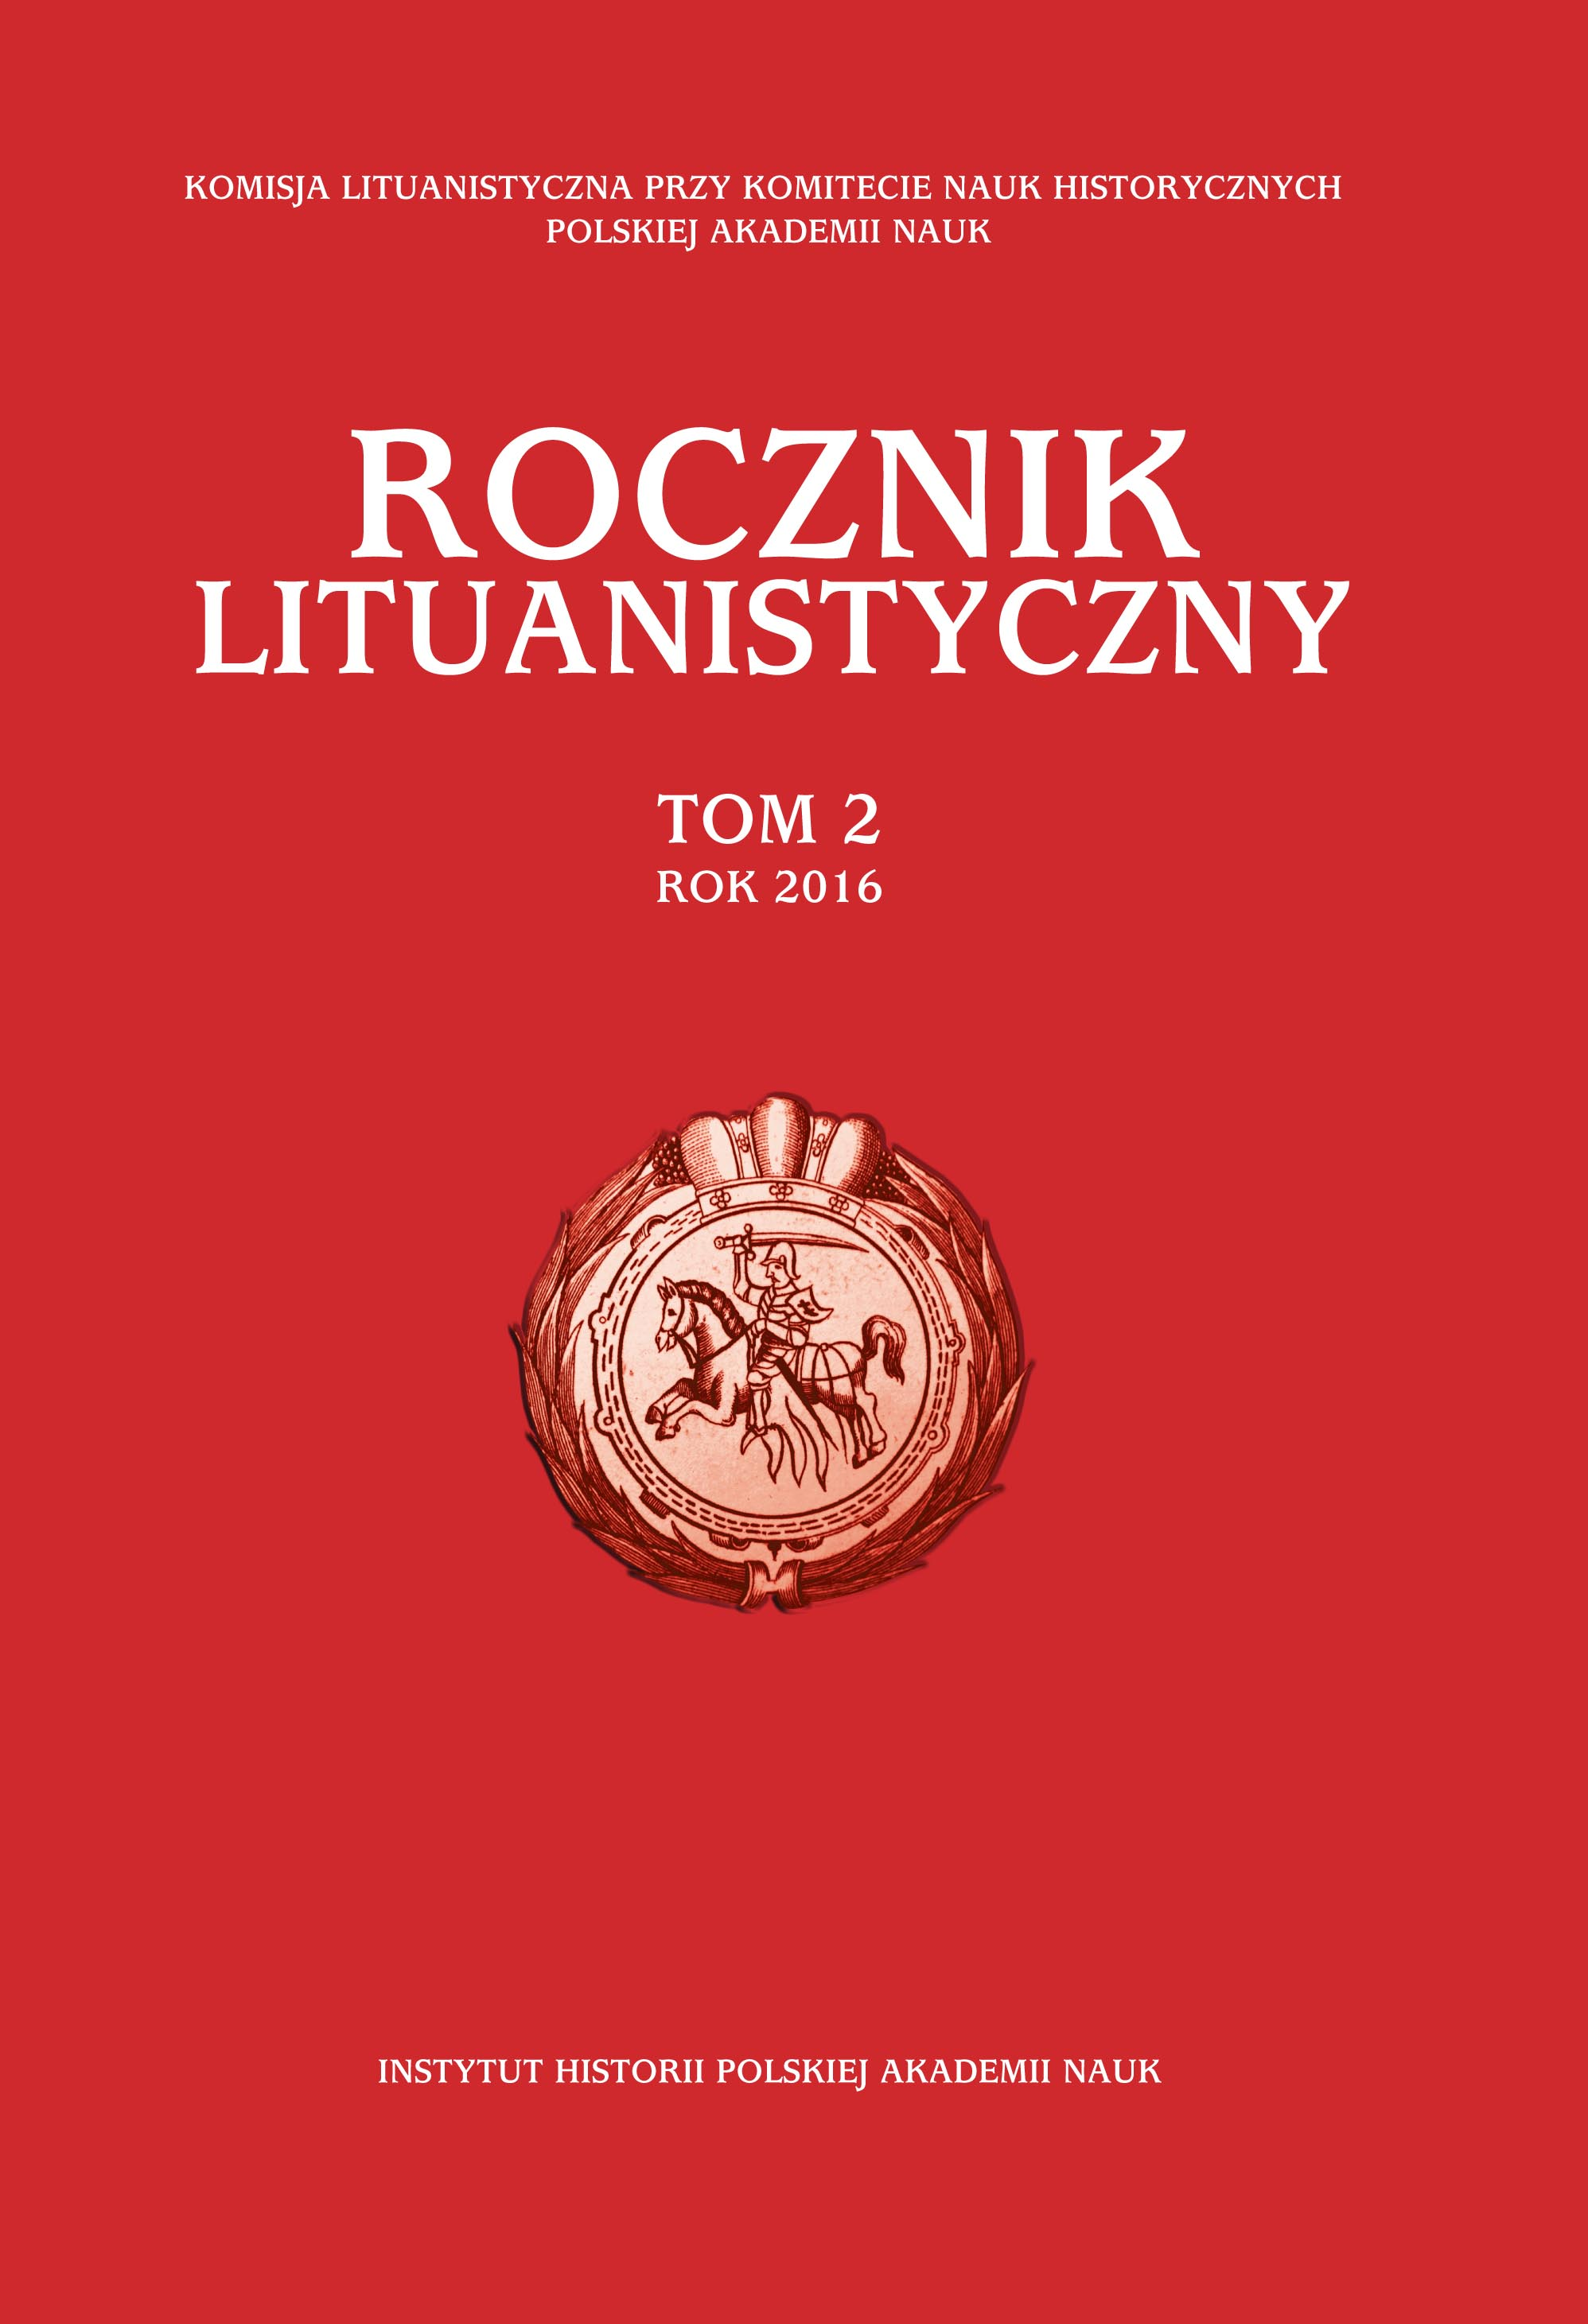 The Lithuanistica Annual Cover Image